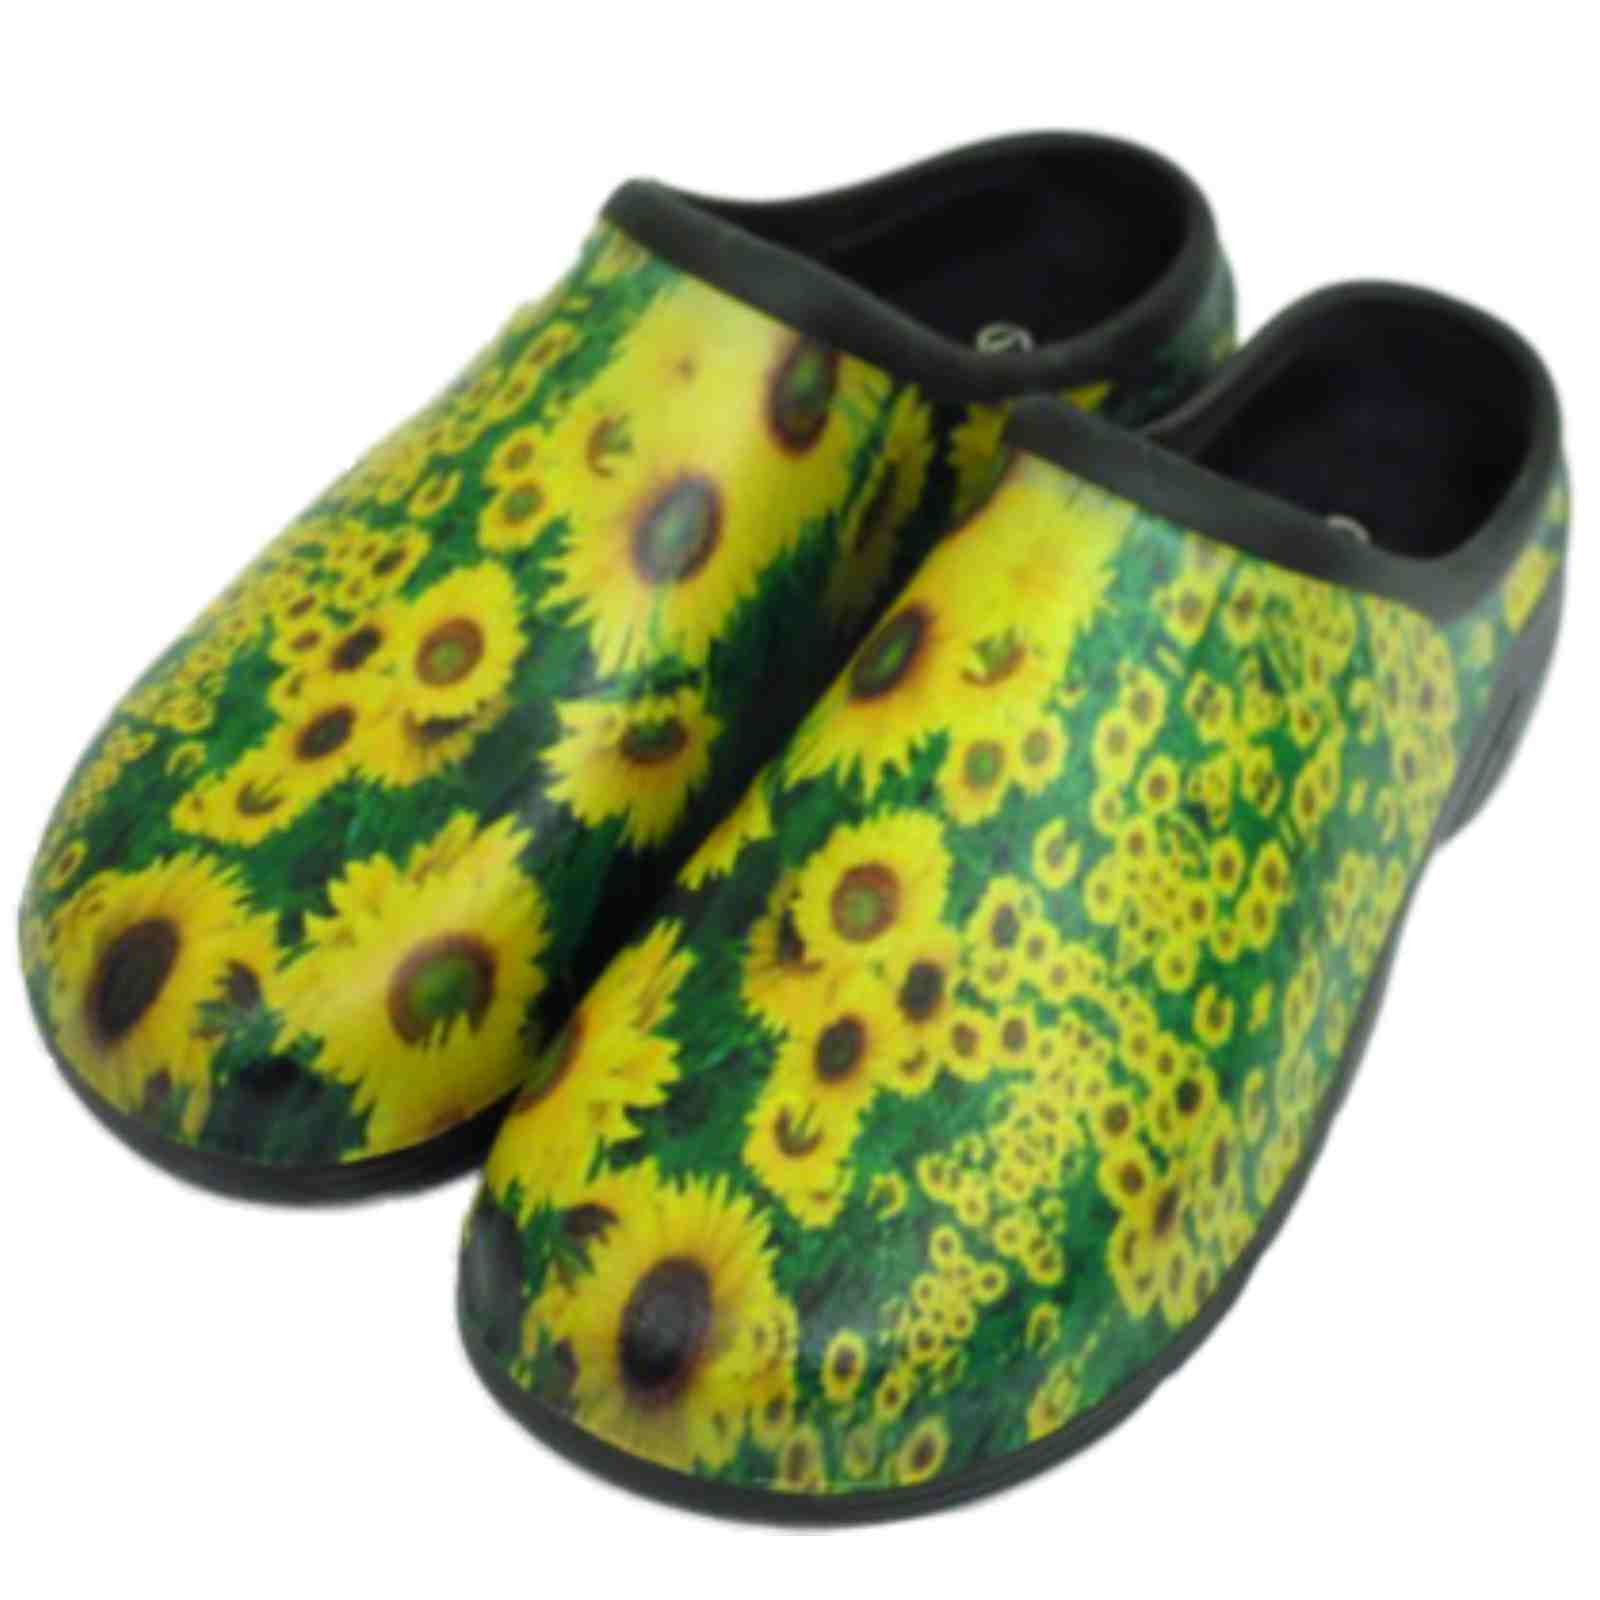 thumbnail 15 - LADIES-GARDENING-CLOGS-LIGHTWEIGHT-SLIP-ON-GARDEN-MULES-OUTDOOR-SHOES-UK-4-8